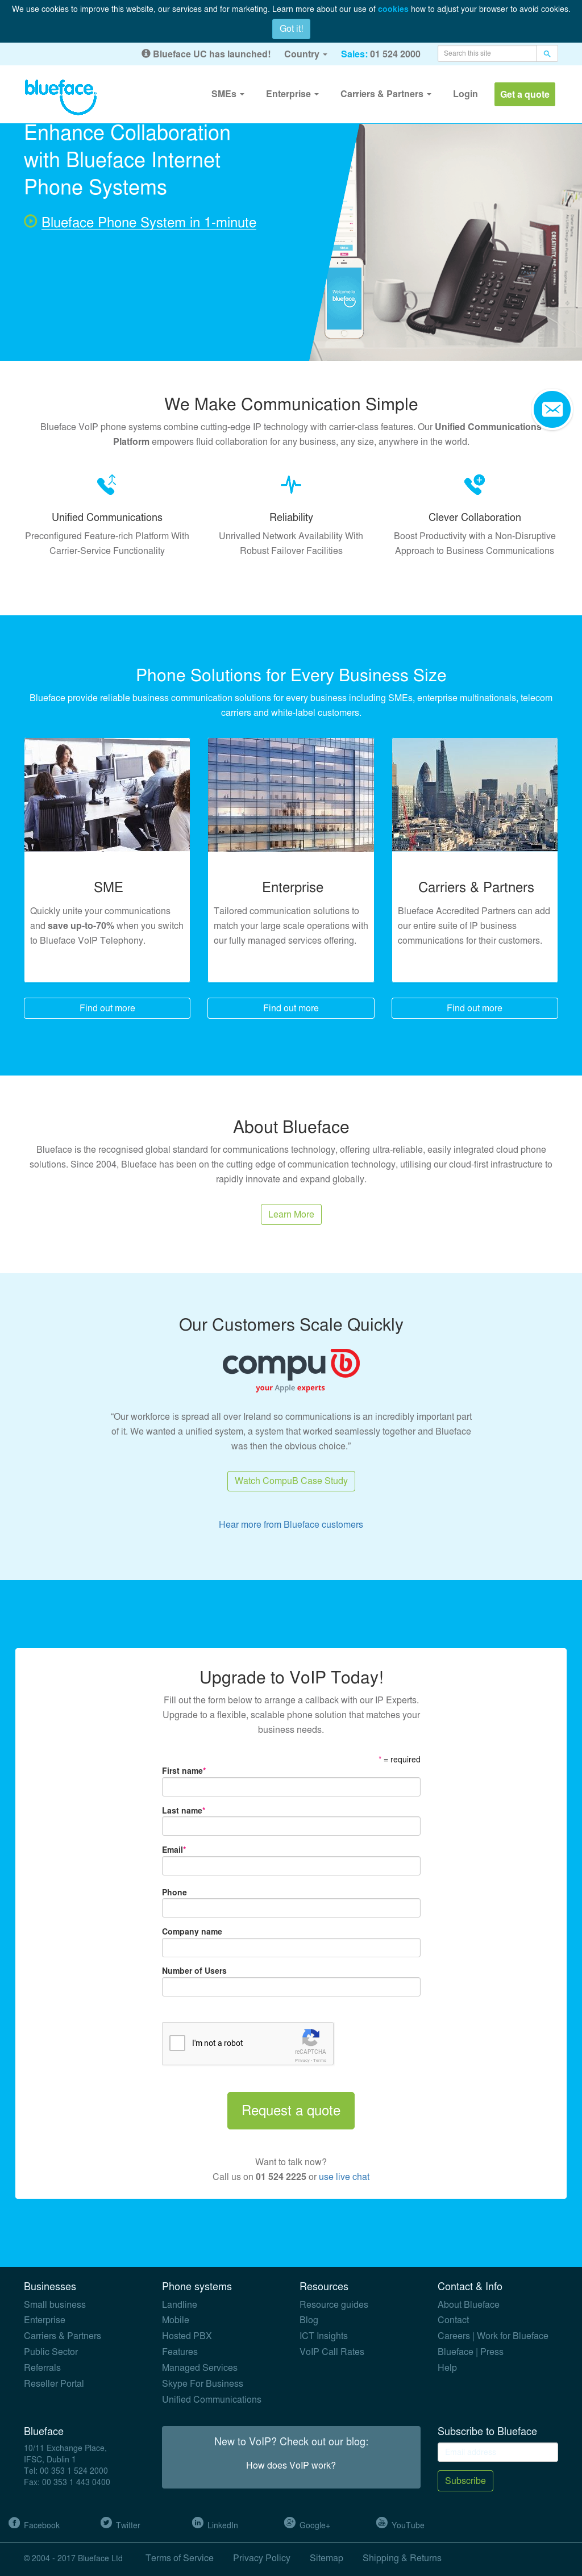 Blueface Competitors, Revenue and Employees - Owler Company